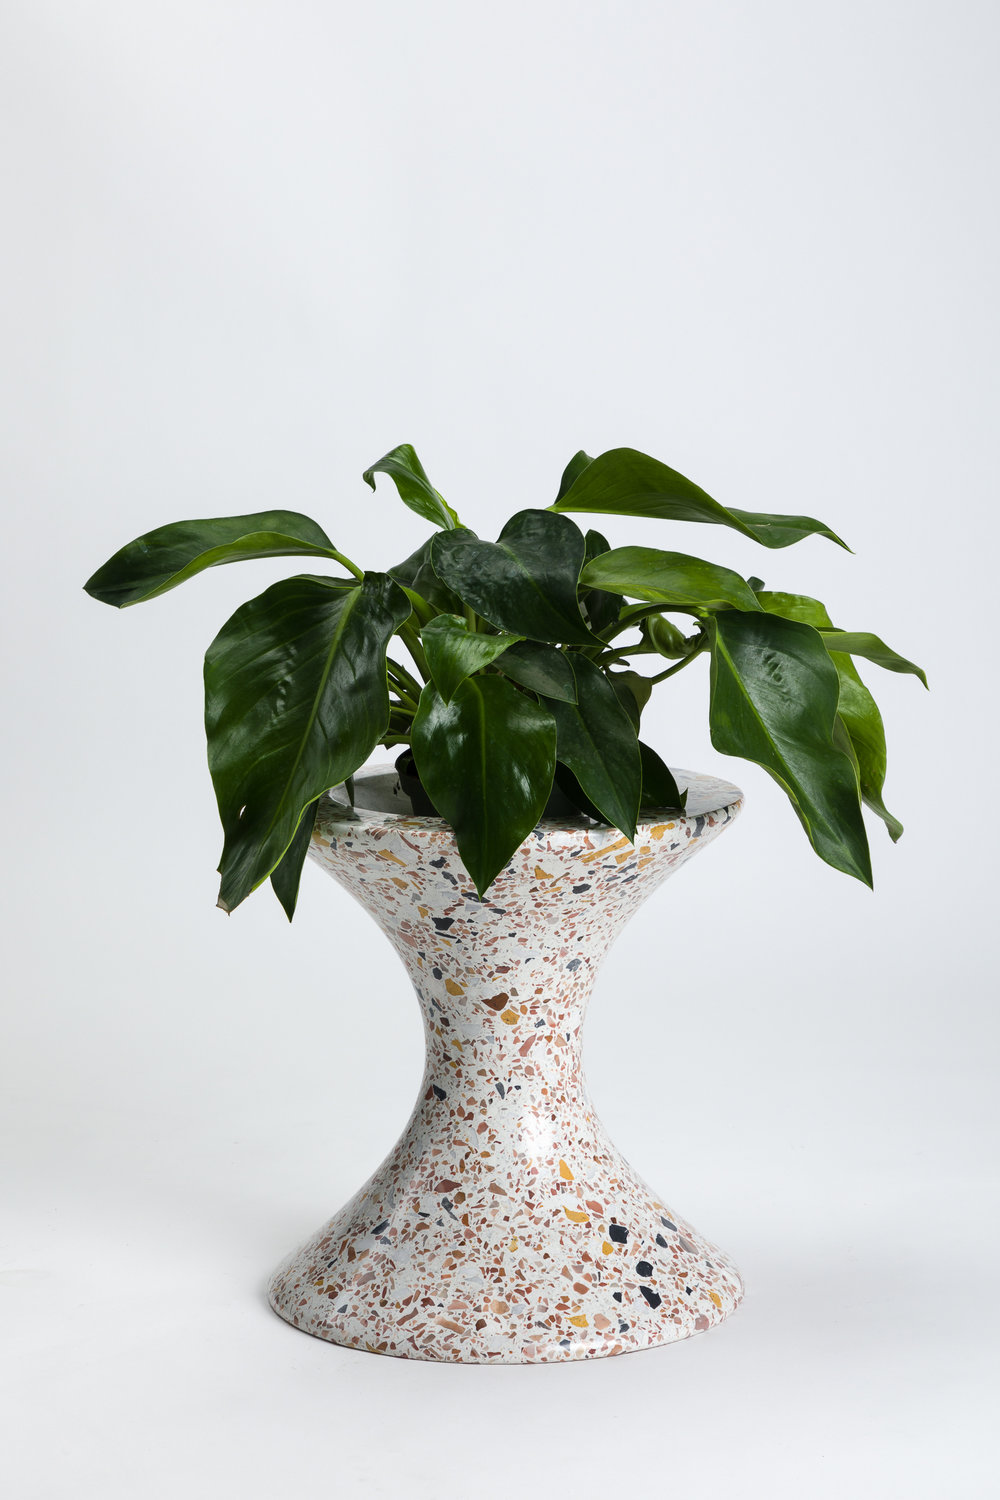 LAUN - Confetti Planter S 001_photo credit Little League Studio.jpg